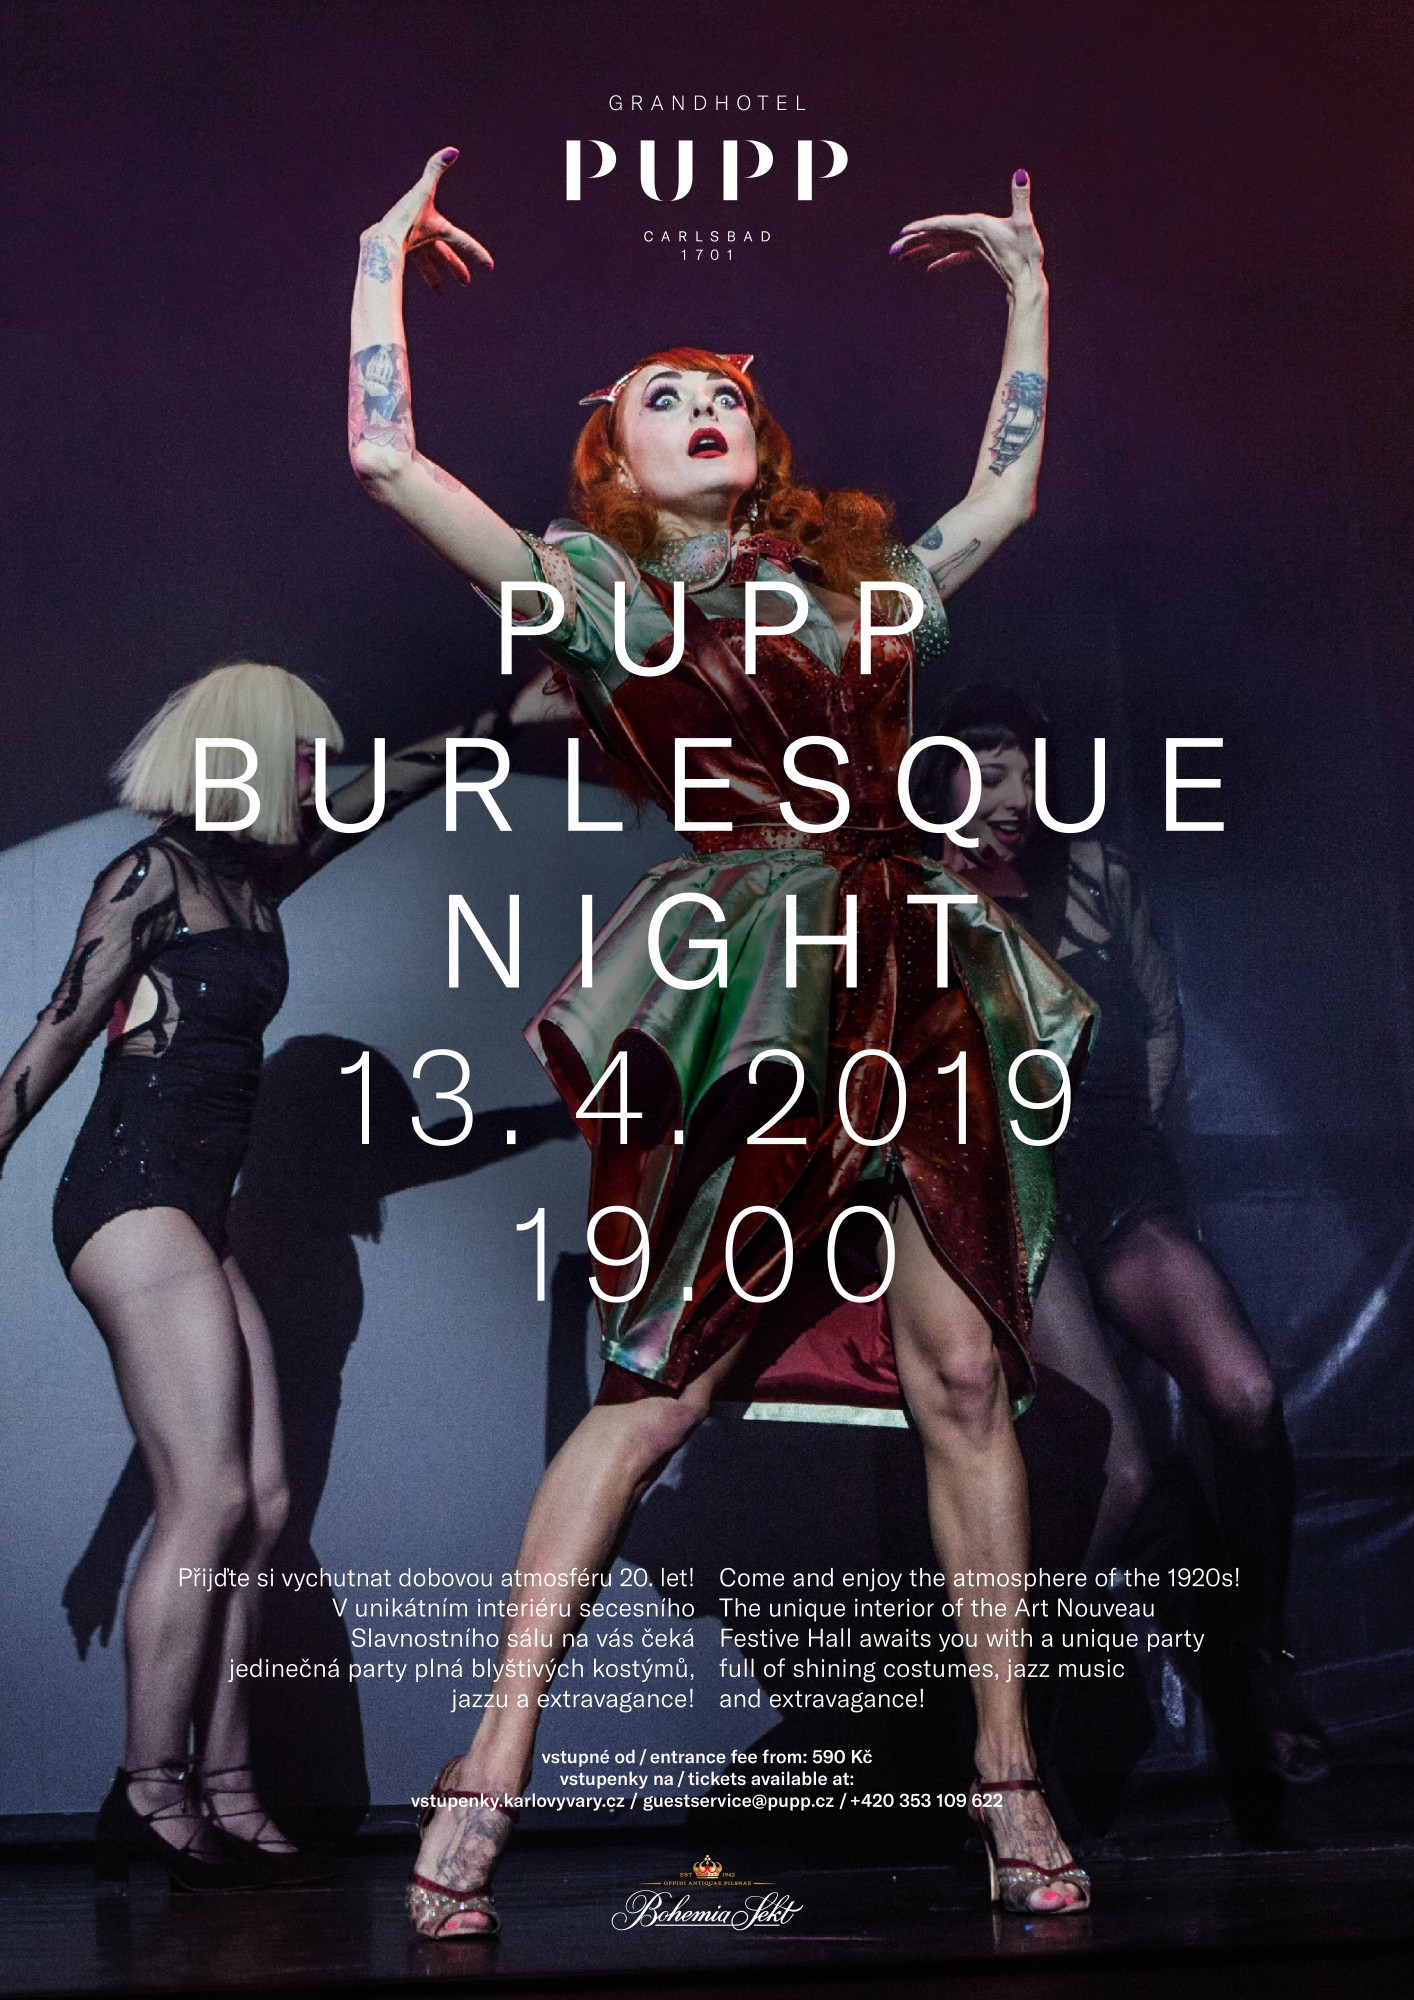 and Guest Service Grandhotel Pupp 420 353 109 622 guestservice pupp